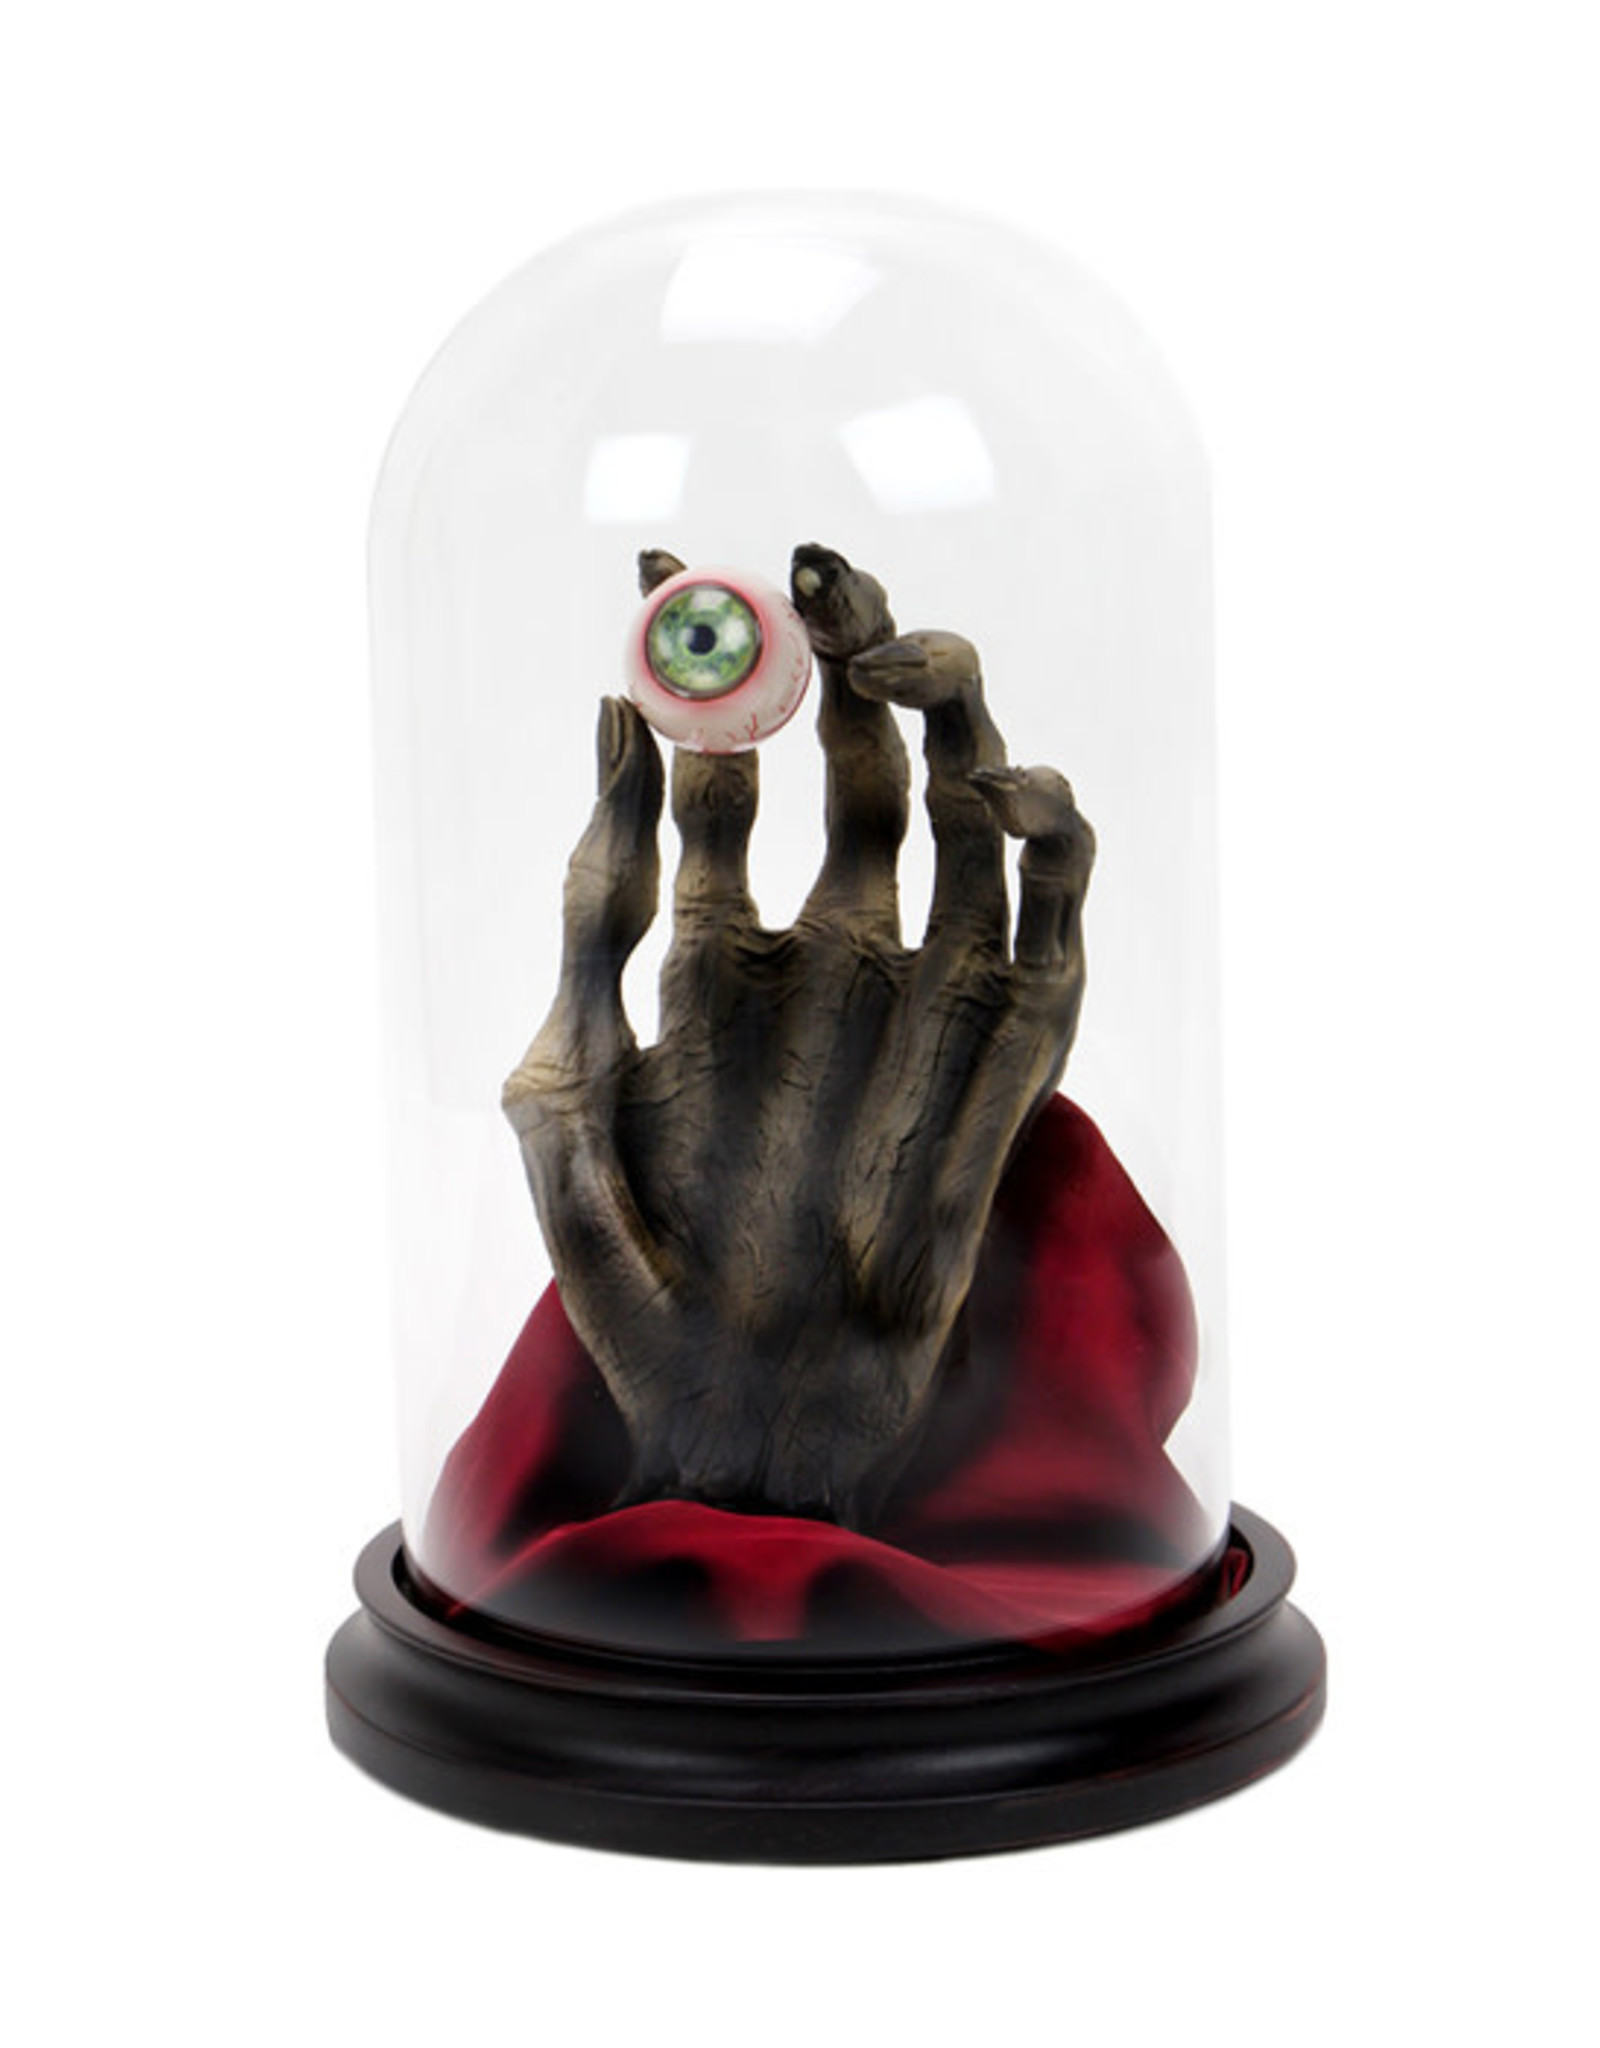 Dungeons & Dragons Dungeons & Dragons: Icons of the Realms - Eye and Hand of Vecna